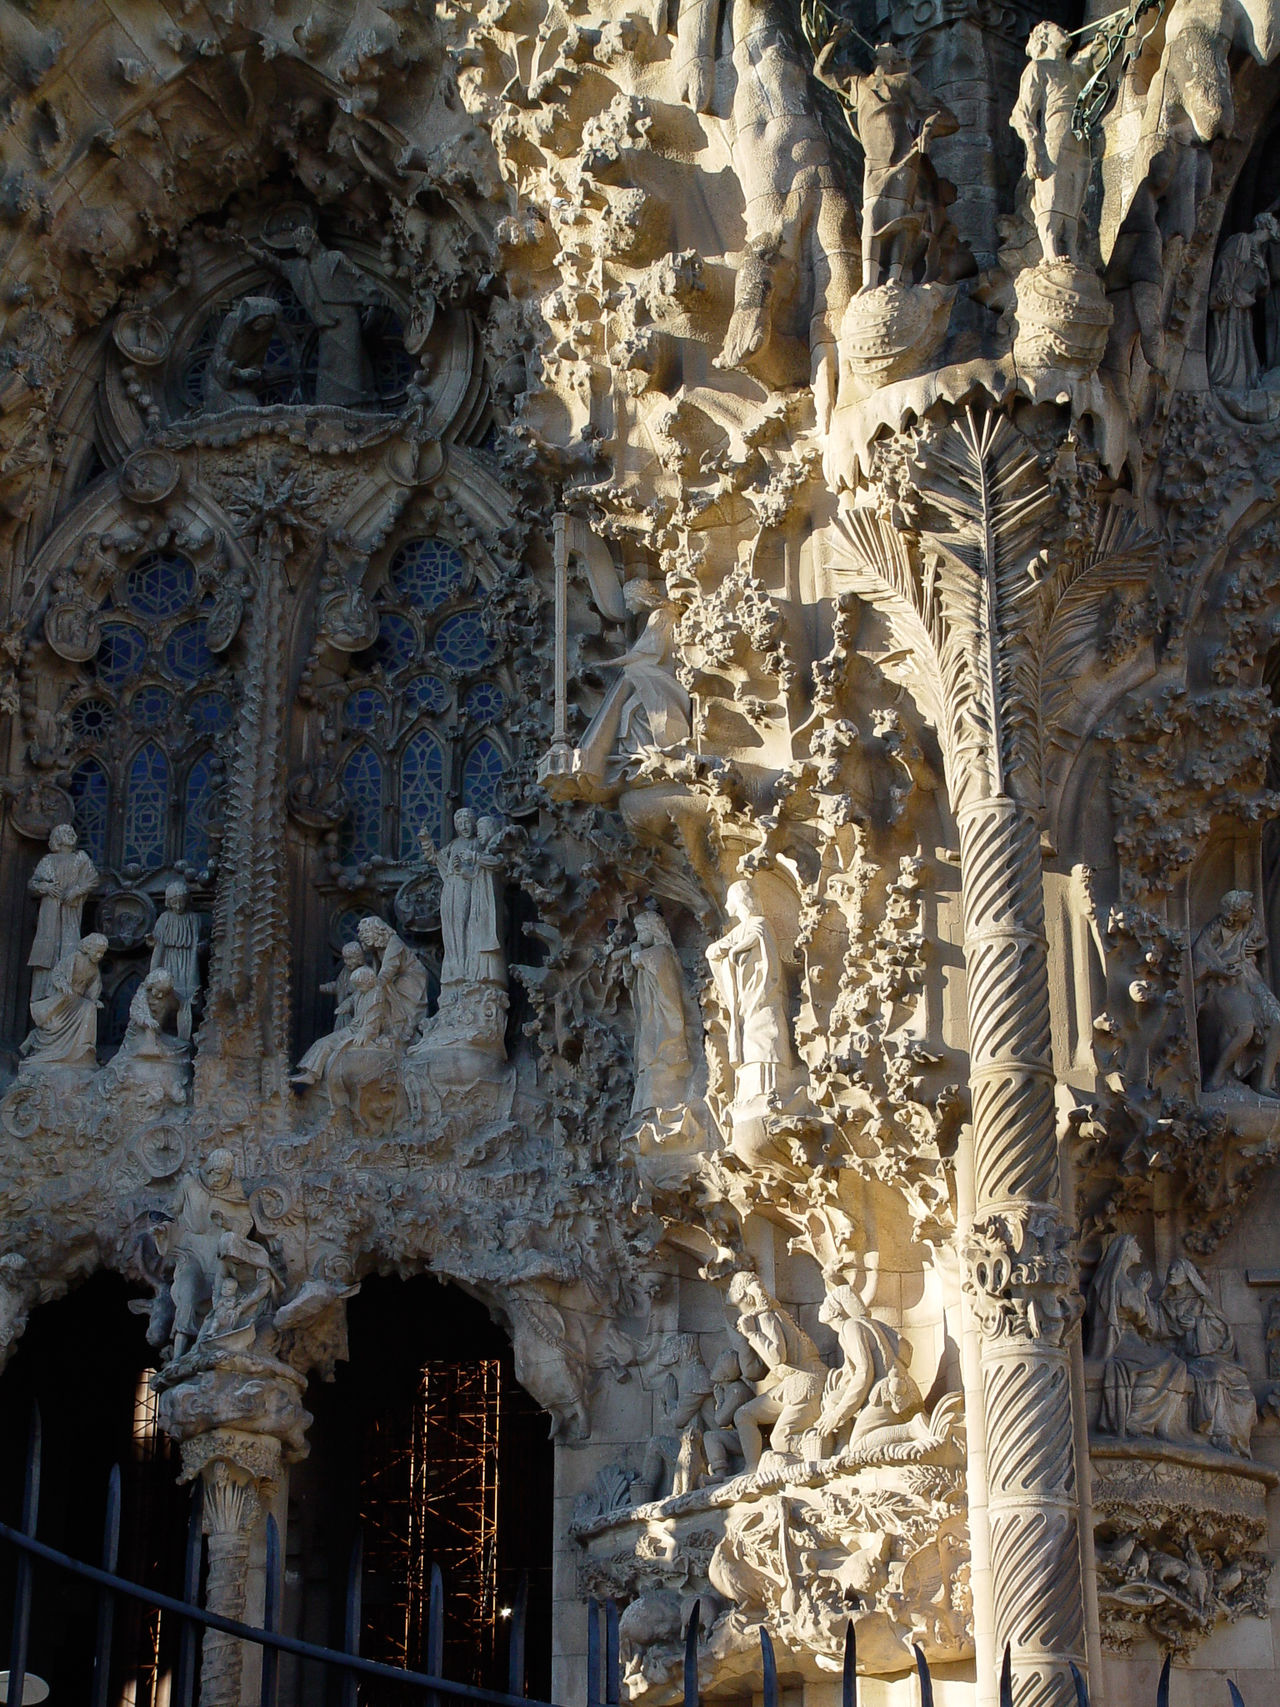 Details from Entrance of Sagrada Familia (2003) 2003 Arch Architectural Feature Architecture Built Structure Day Details Façade Gaudi Gaudi #barcelona History Low Angle View Modernisme Outdoors Place Of Worship Sagrada Familia Window